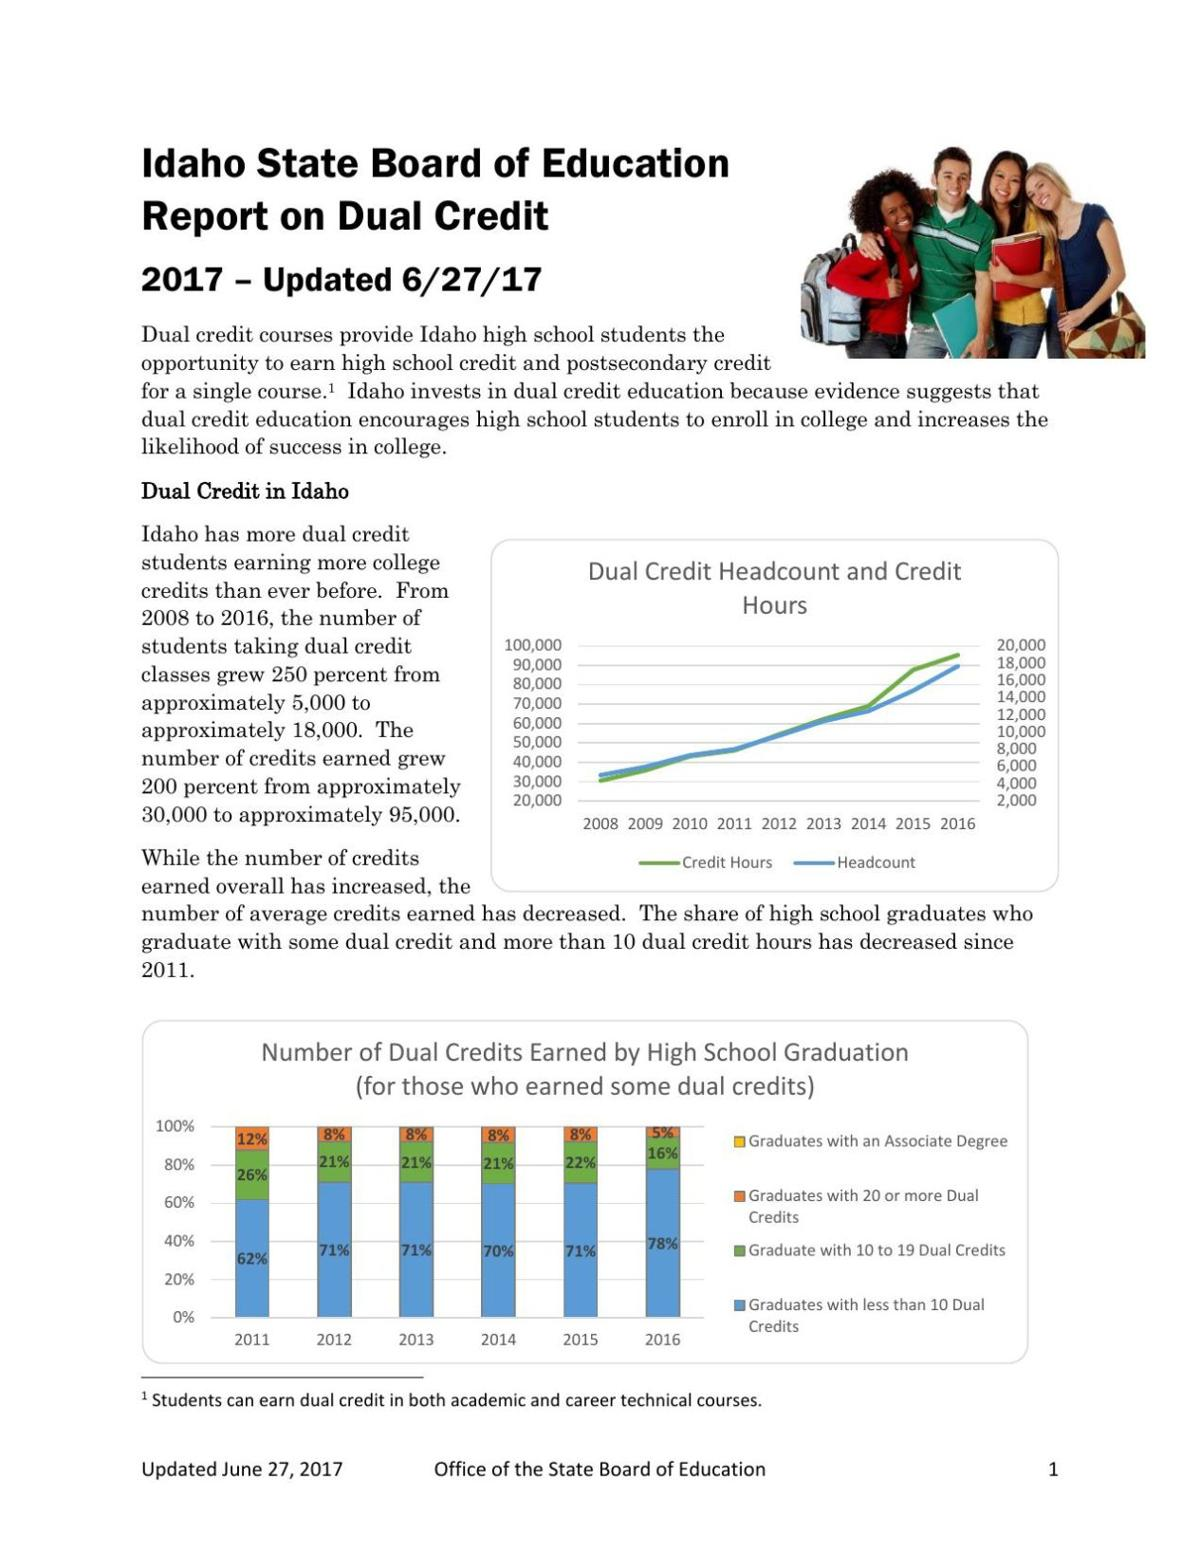 The Idaho State Board of Education's report on dual-credit programs